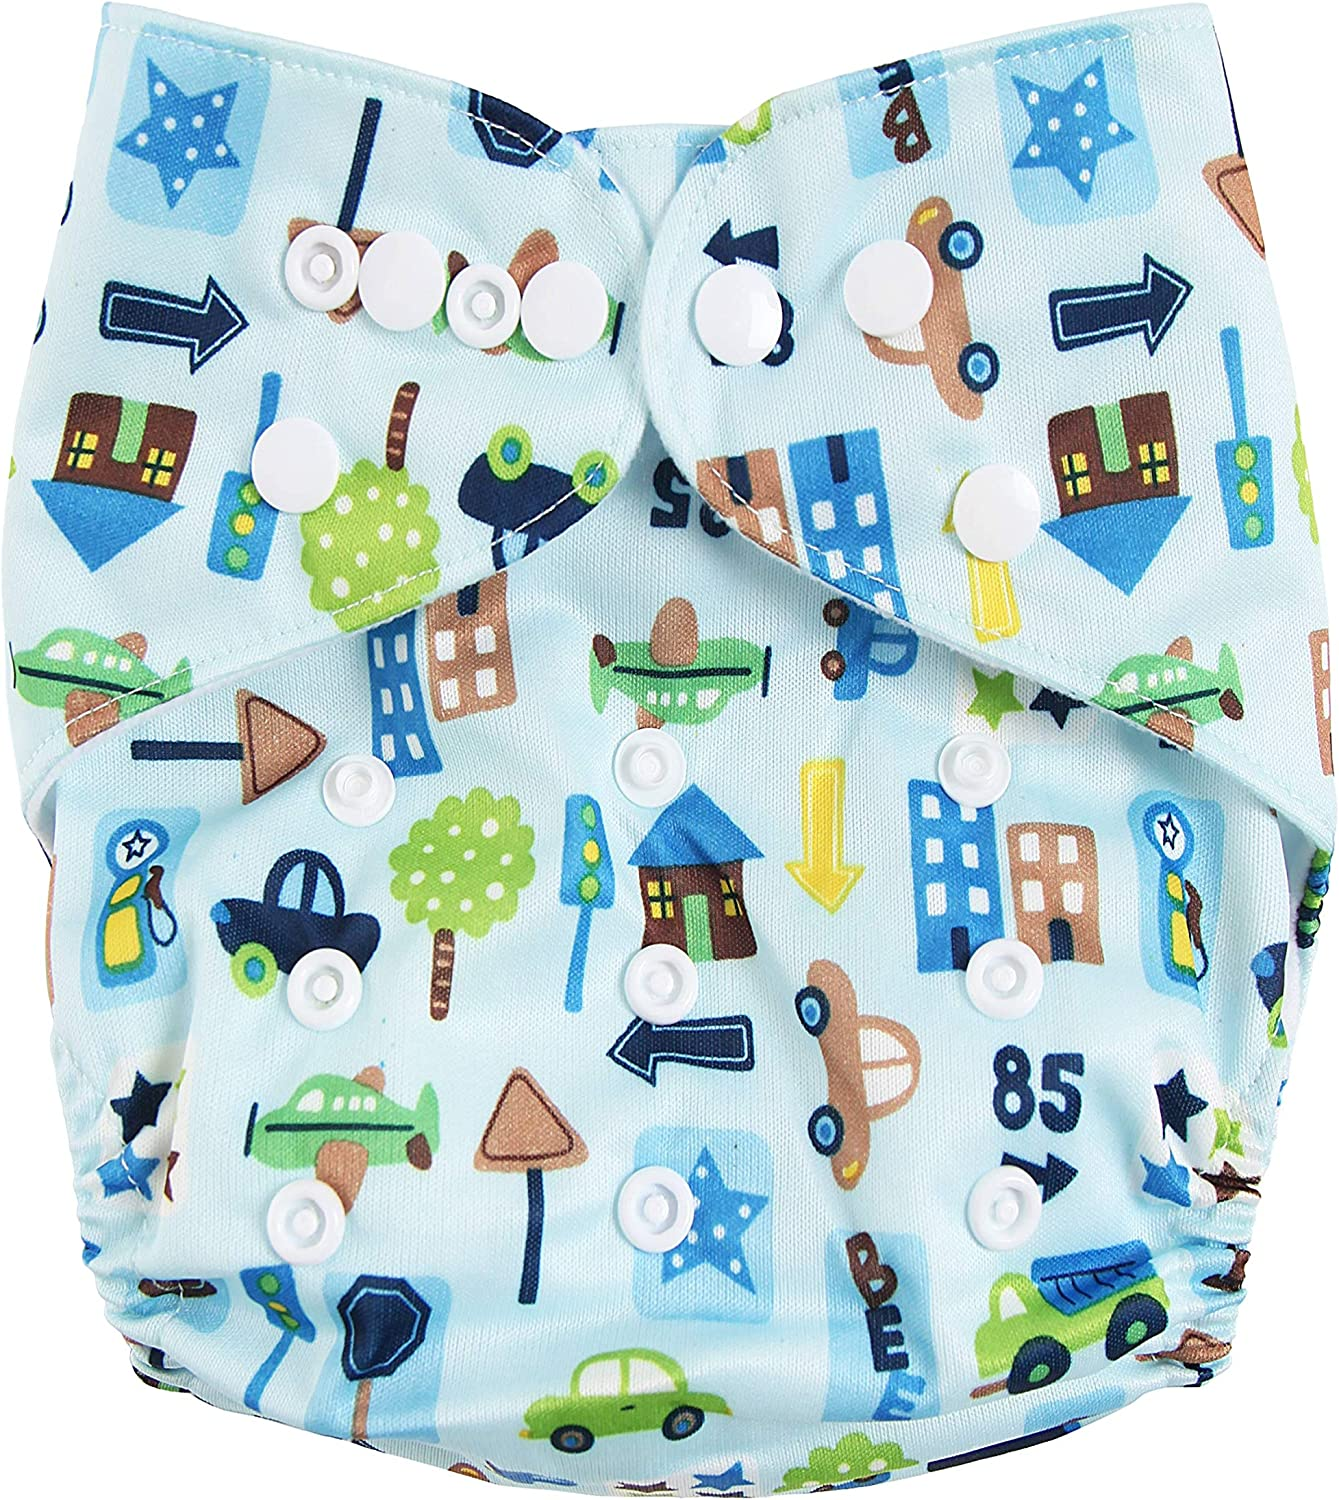 Banana Monkey Soft Complete with 6 x 3-Layer Bamboo Machine Washable Insert Pads Wave Reusable Adjustable Washable Double Row Nappy